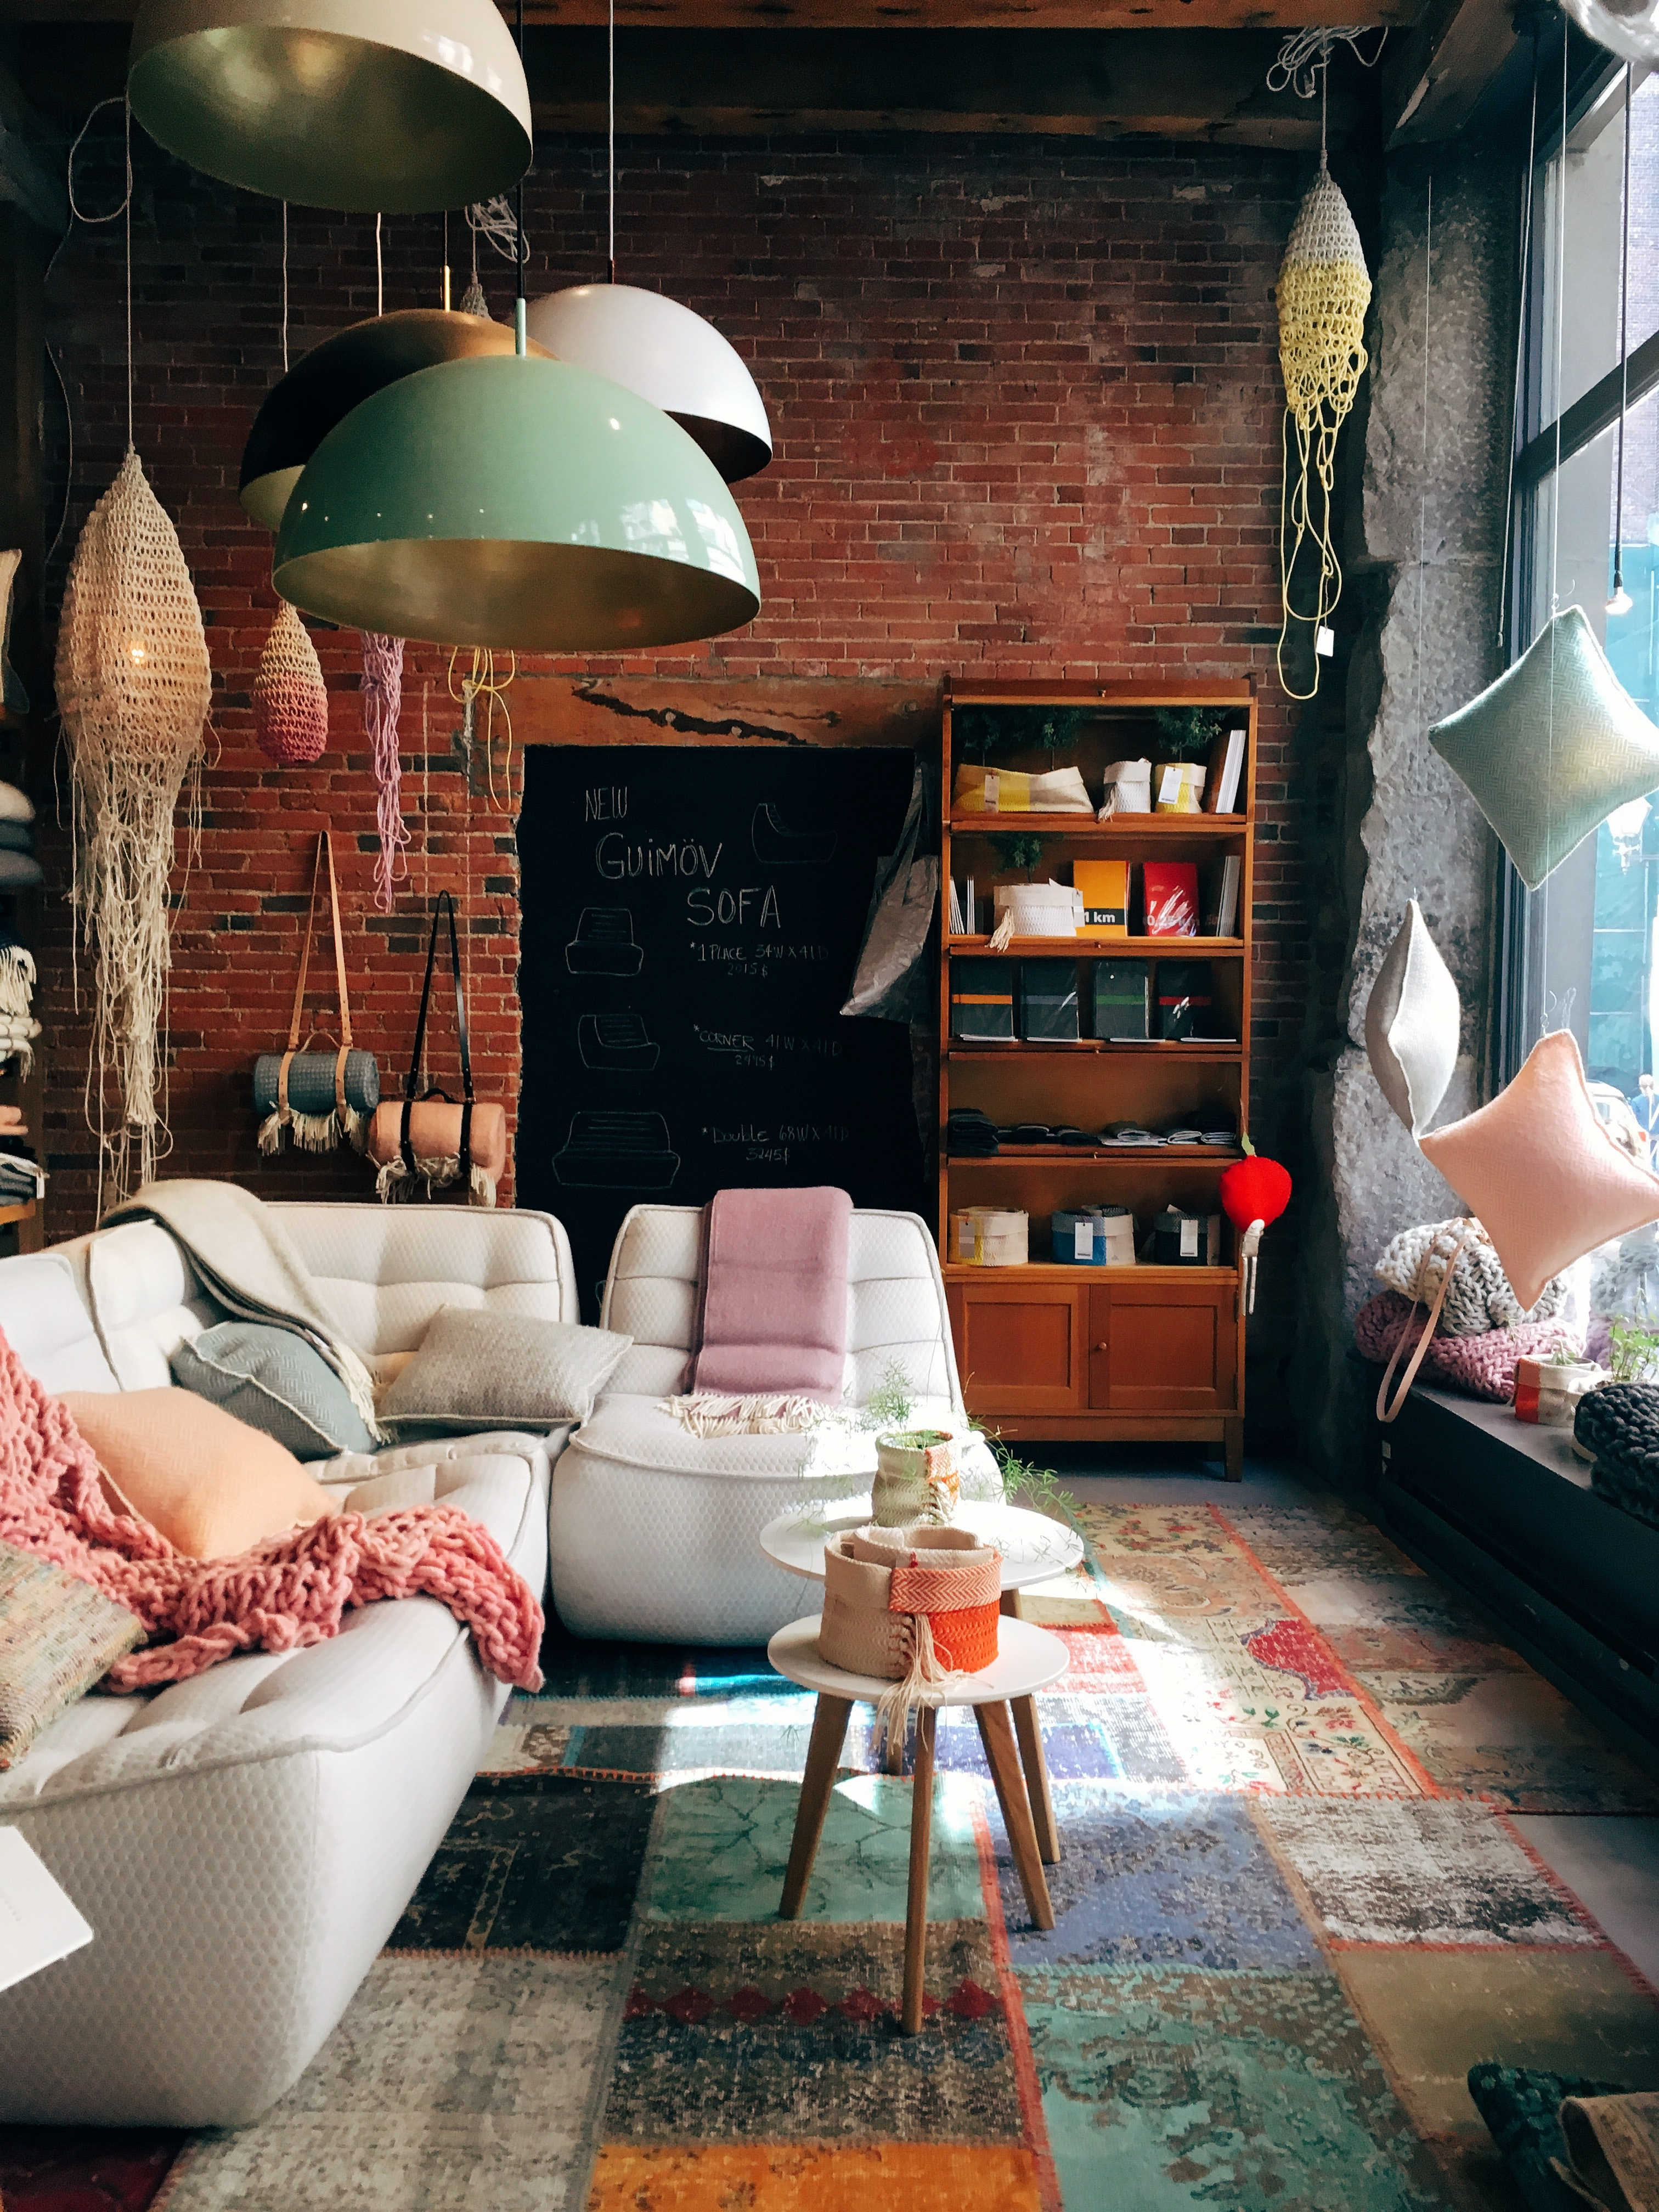 A living room having a brick wall, glass windows and containing a white sofa with throw pillows in Canada.